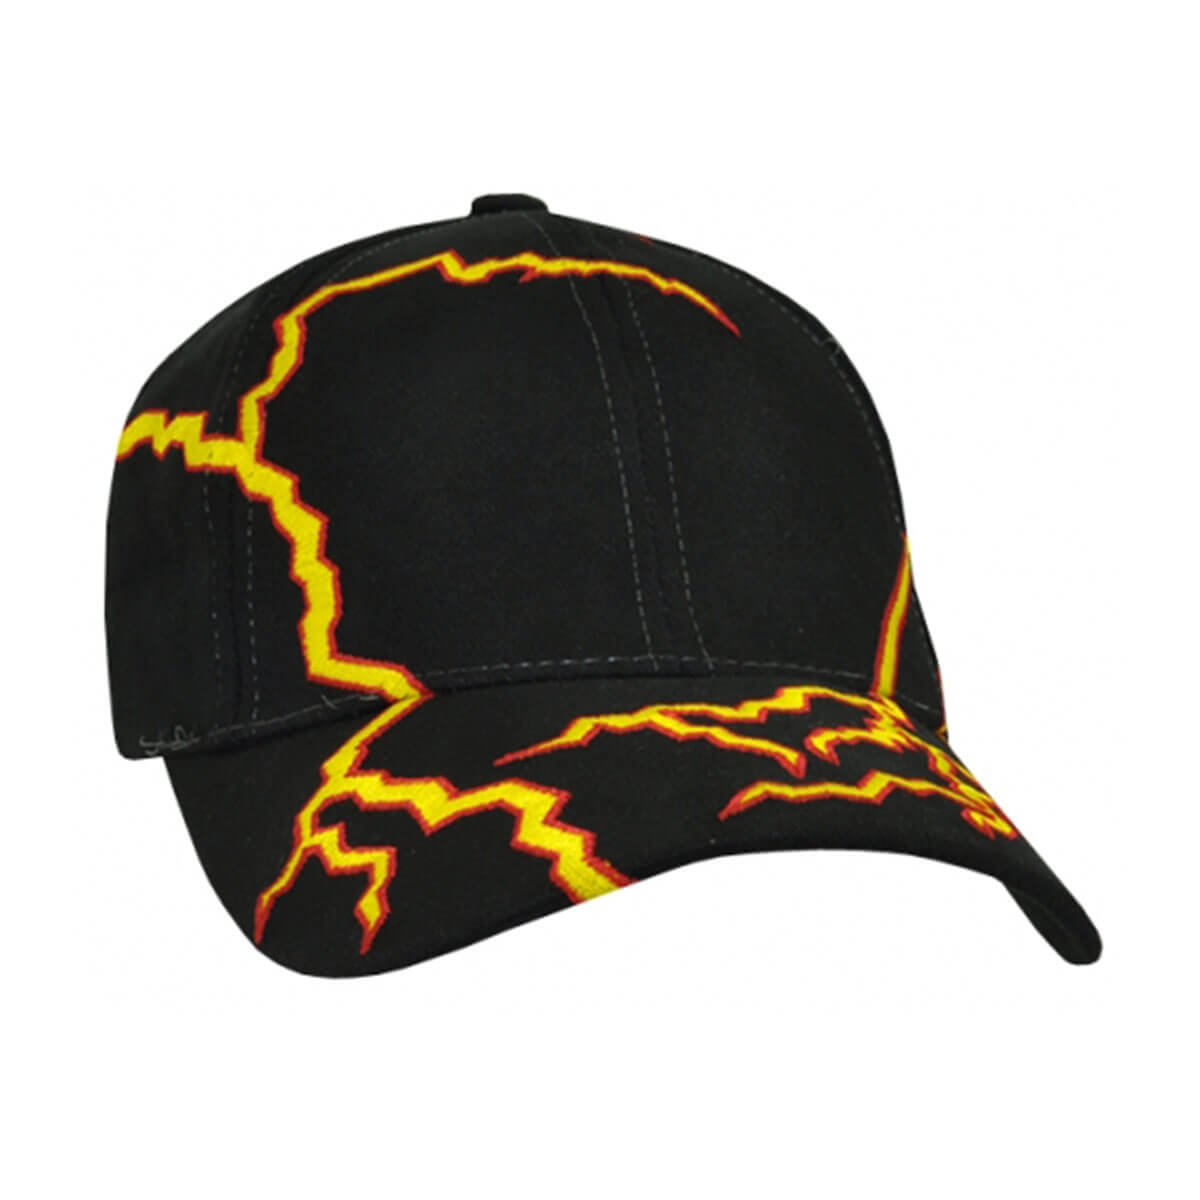 Lightning Cap-Black / Yellow / Red